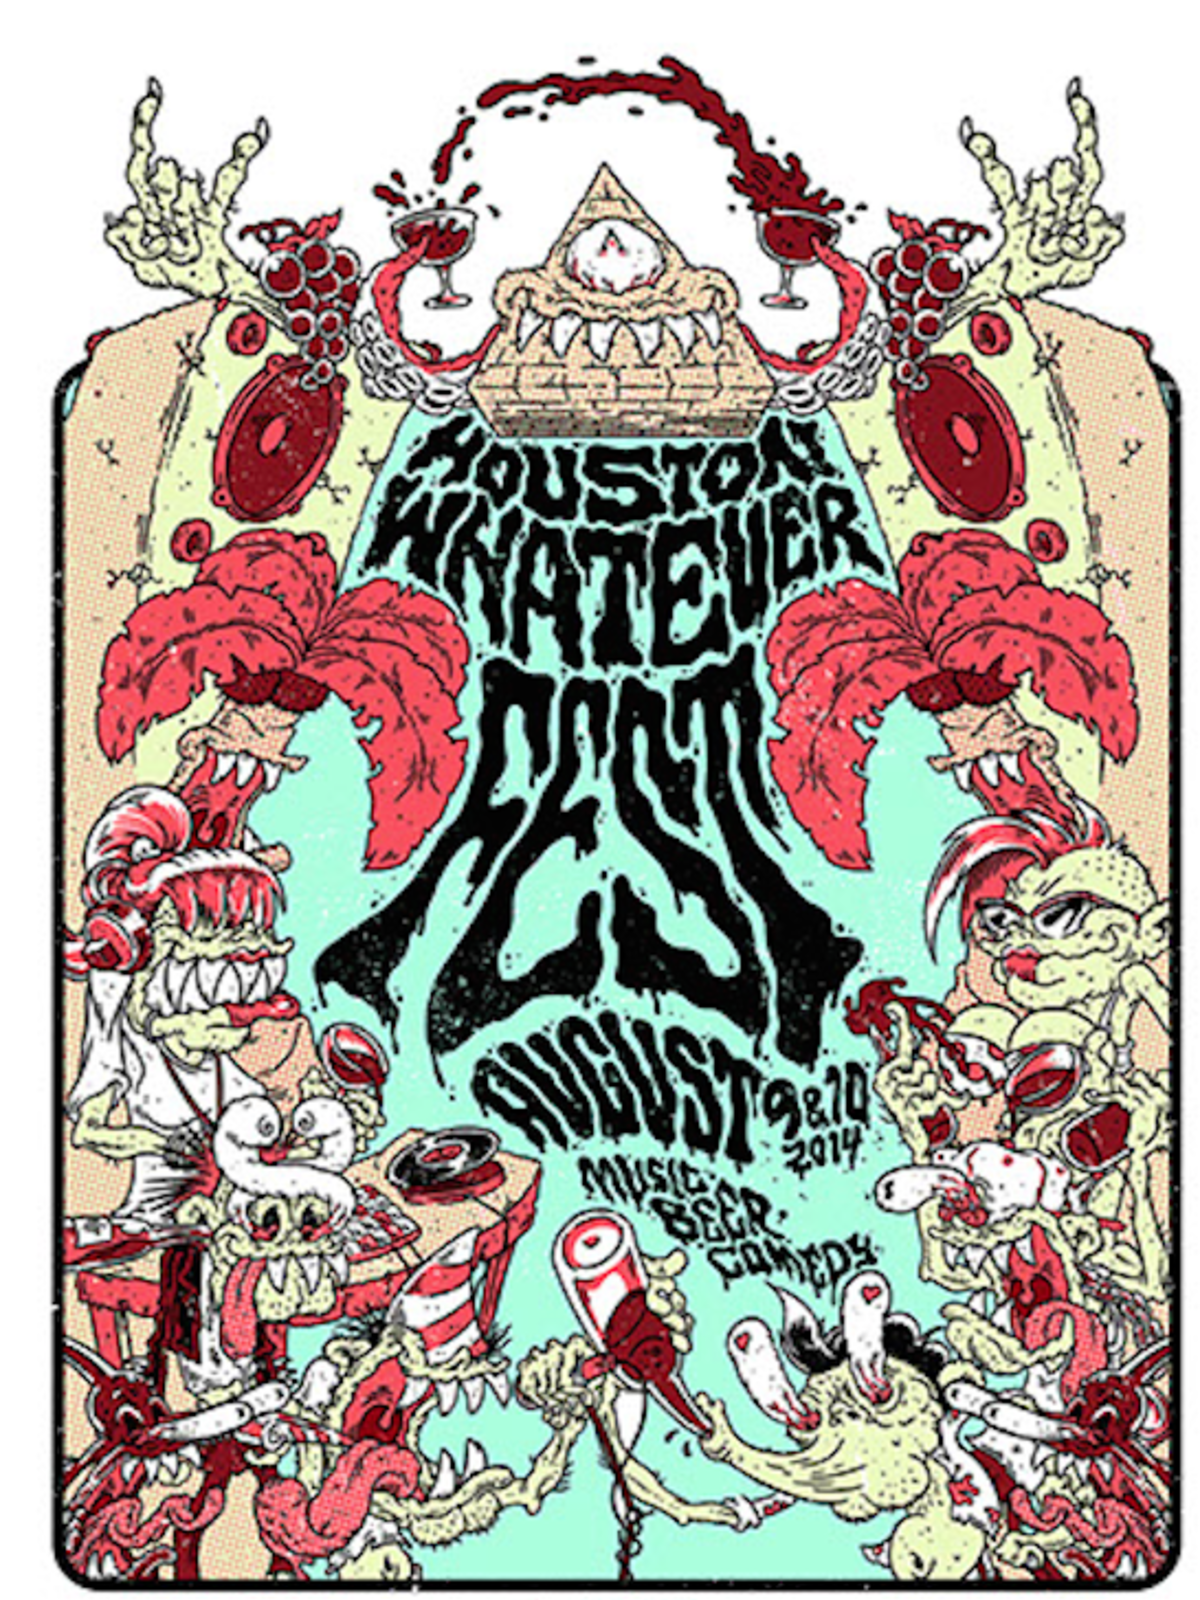 Houston Whatever Fest